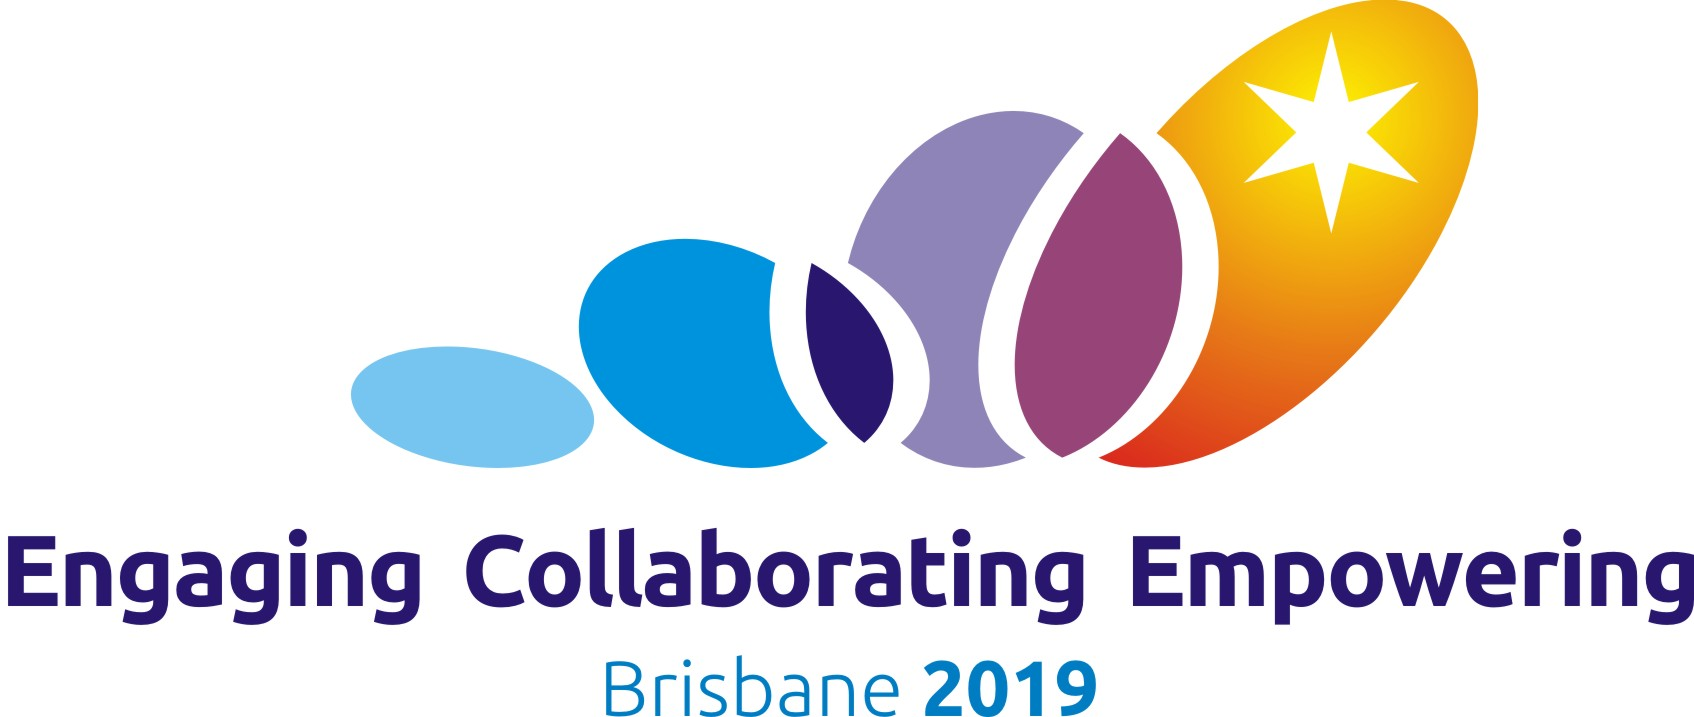 This is the official logo of the 209 Conference being jointly hosted by Speech Pathology Australia and the New Zealand Speech-language Therapists' Association. It has a coloured logo and the words Engaging, Collaborating, Empowering, Brisbane 2019.